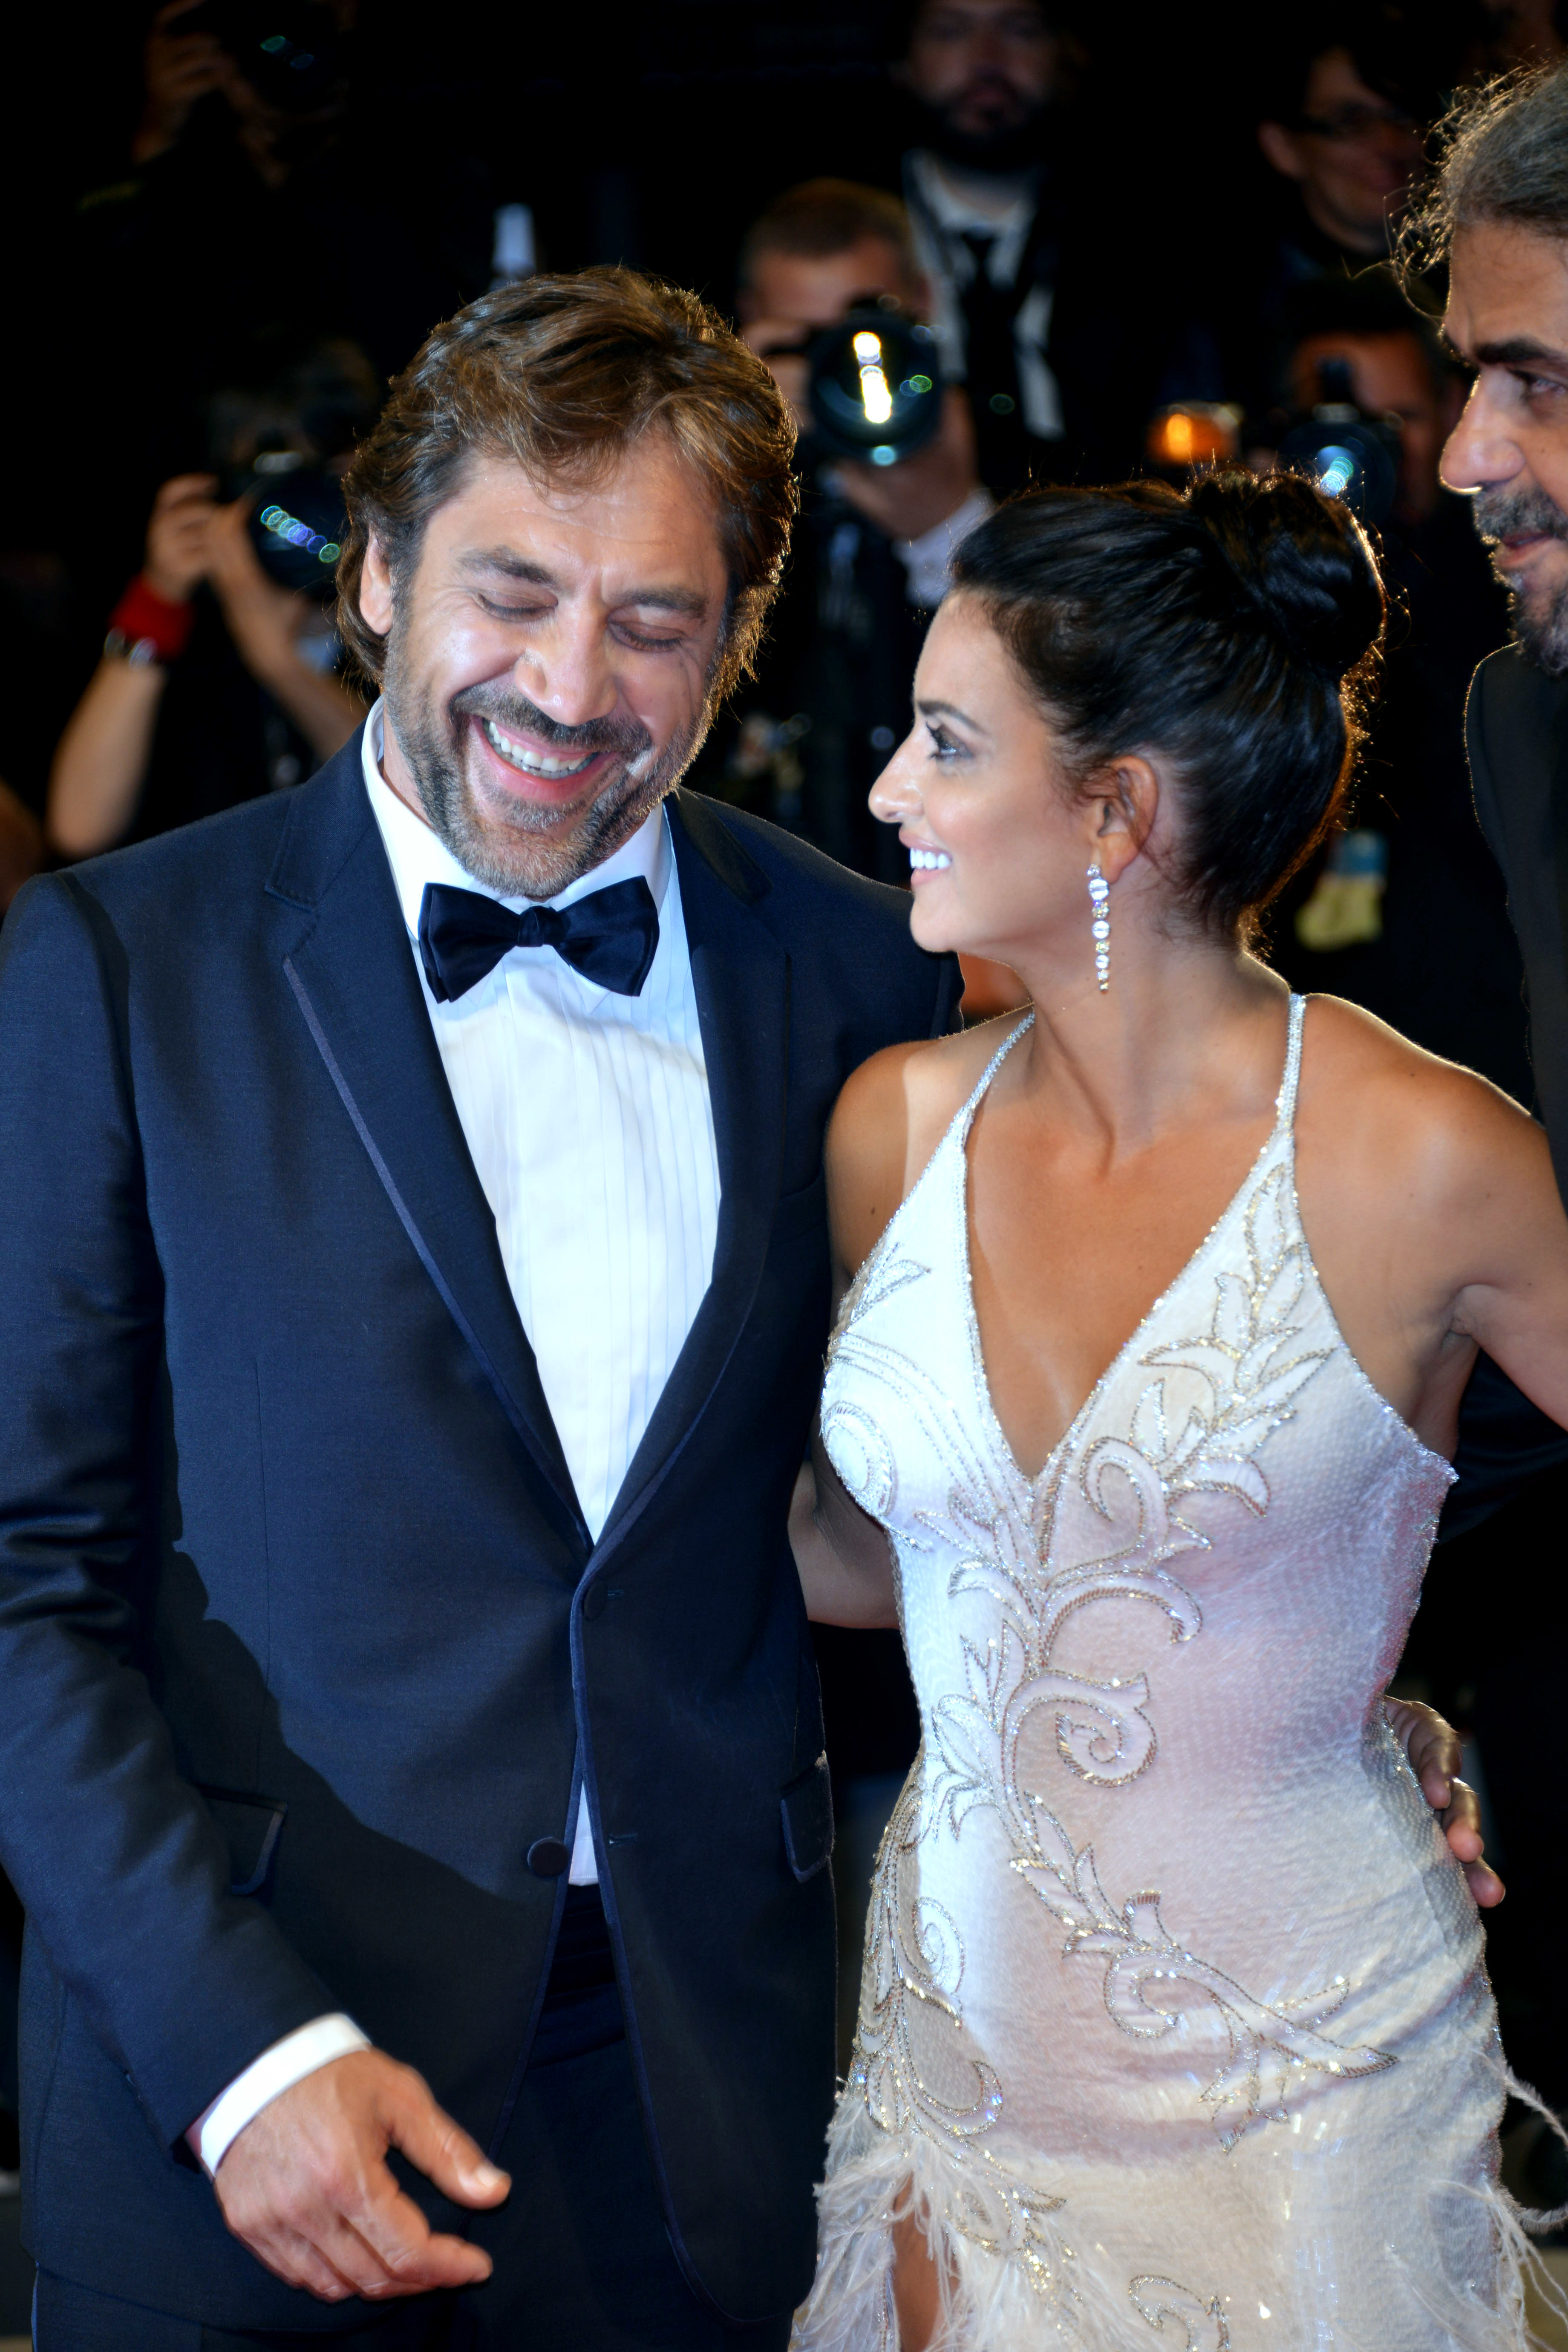 """Javier Bardem and Penelope Cruz looked to be so in love while on the red carpet for the """"Loving Pablo"""" premiere during the 74th Venice Film Festival in Venice, Italy on Sept. 6, 2017."""